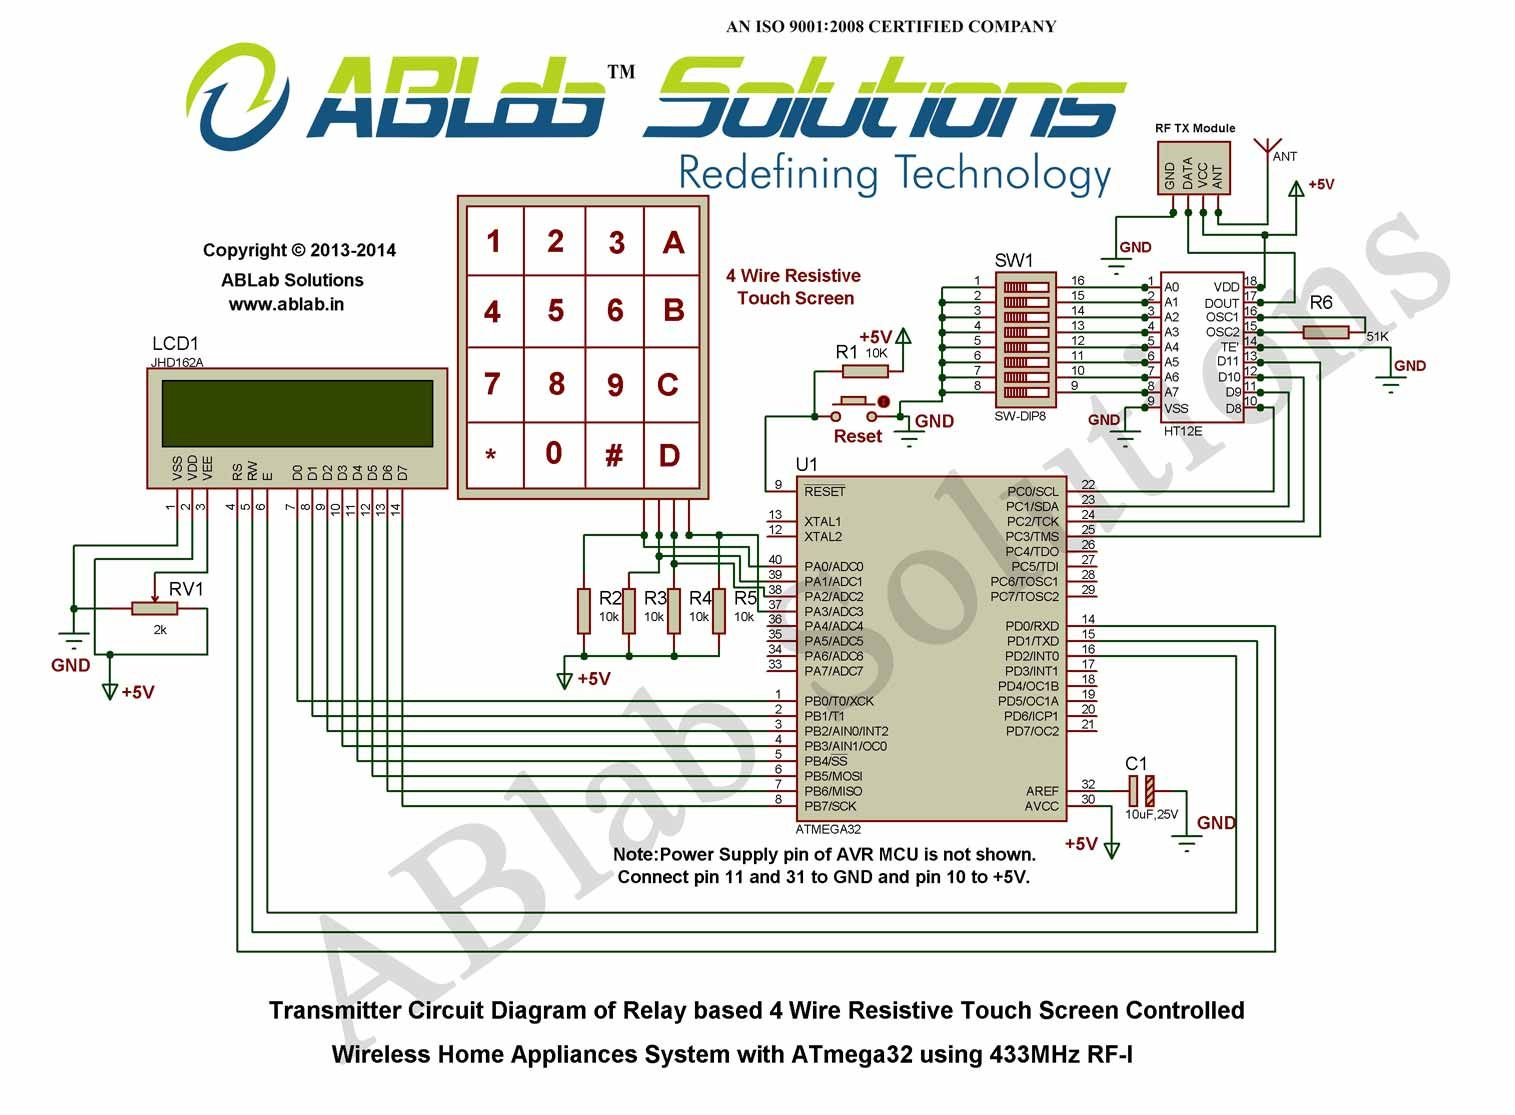 hight resolution of relay based 4 wire resistive touch screen controlled wireless home appliances system with avr atmega32 microcontroller using 433mhz rf i transmitter circuit